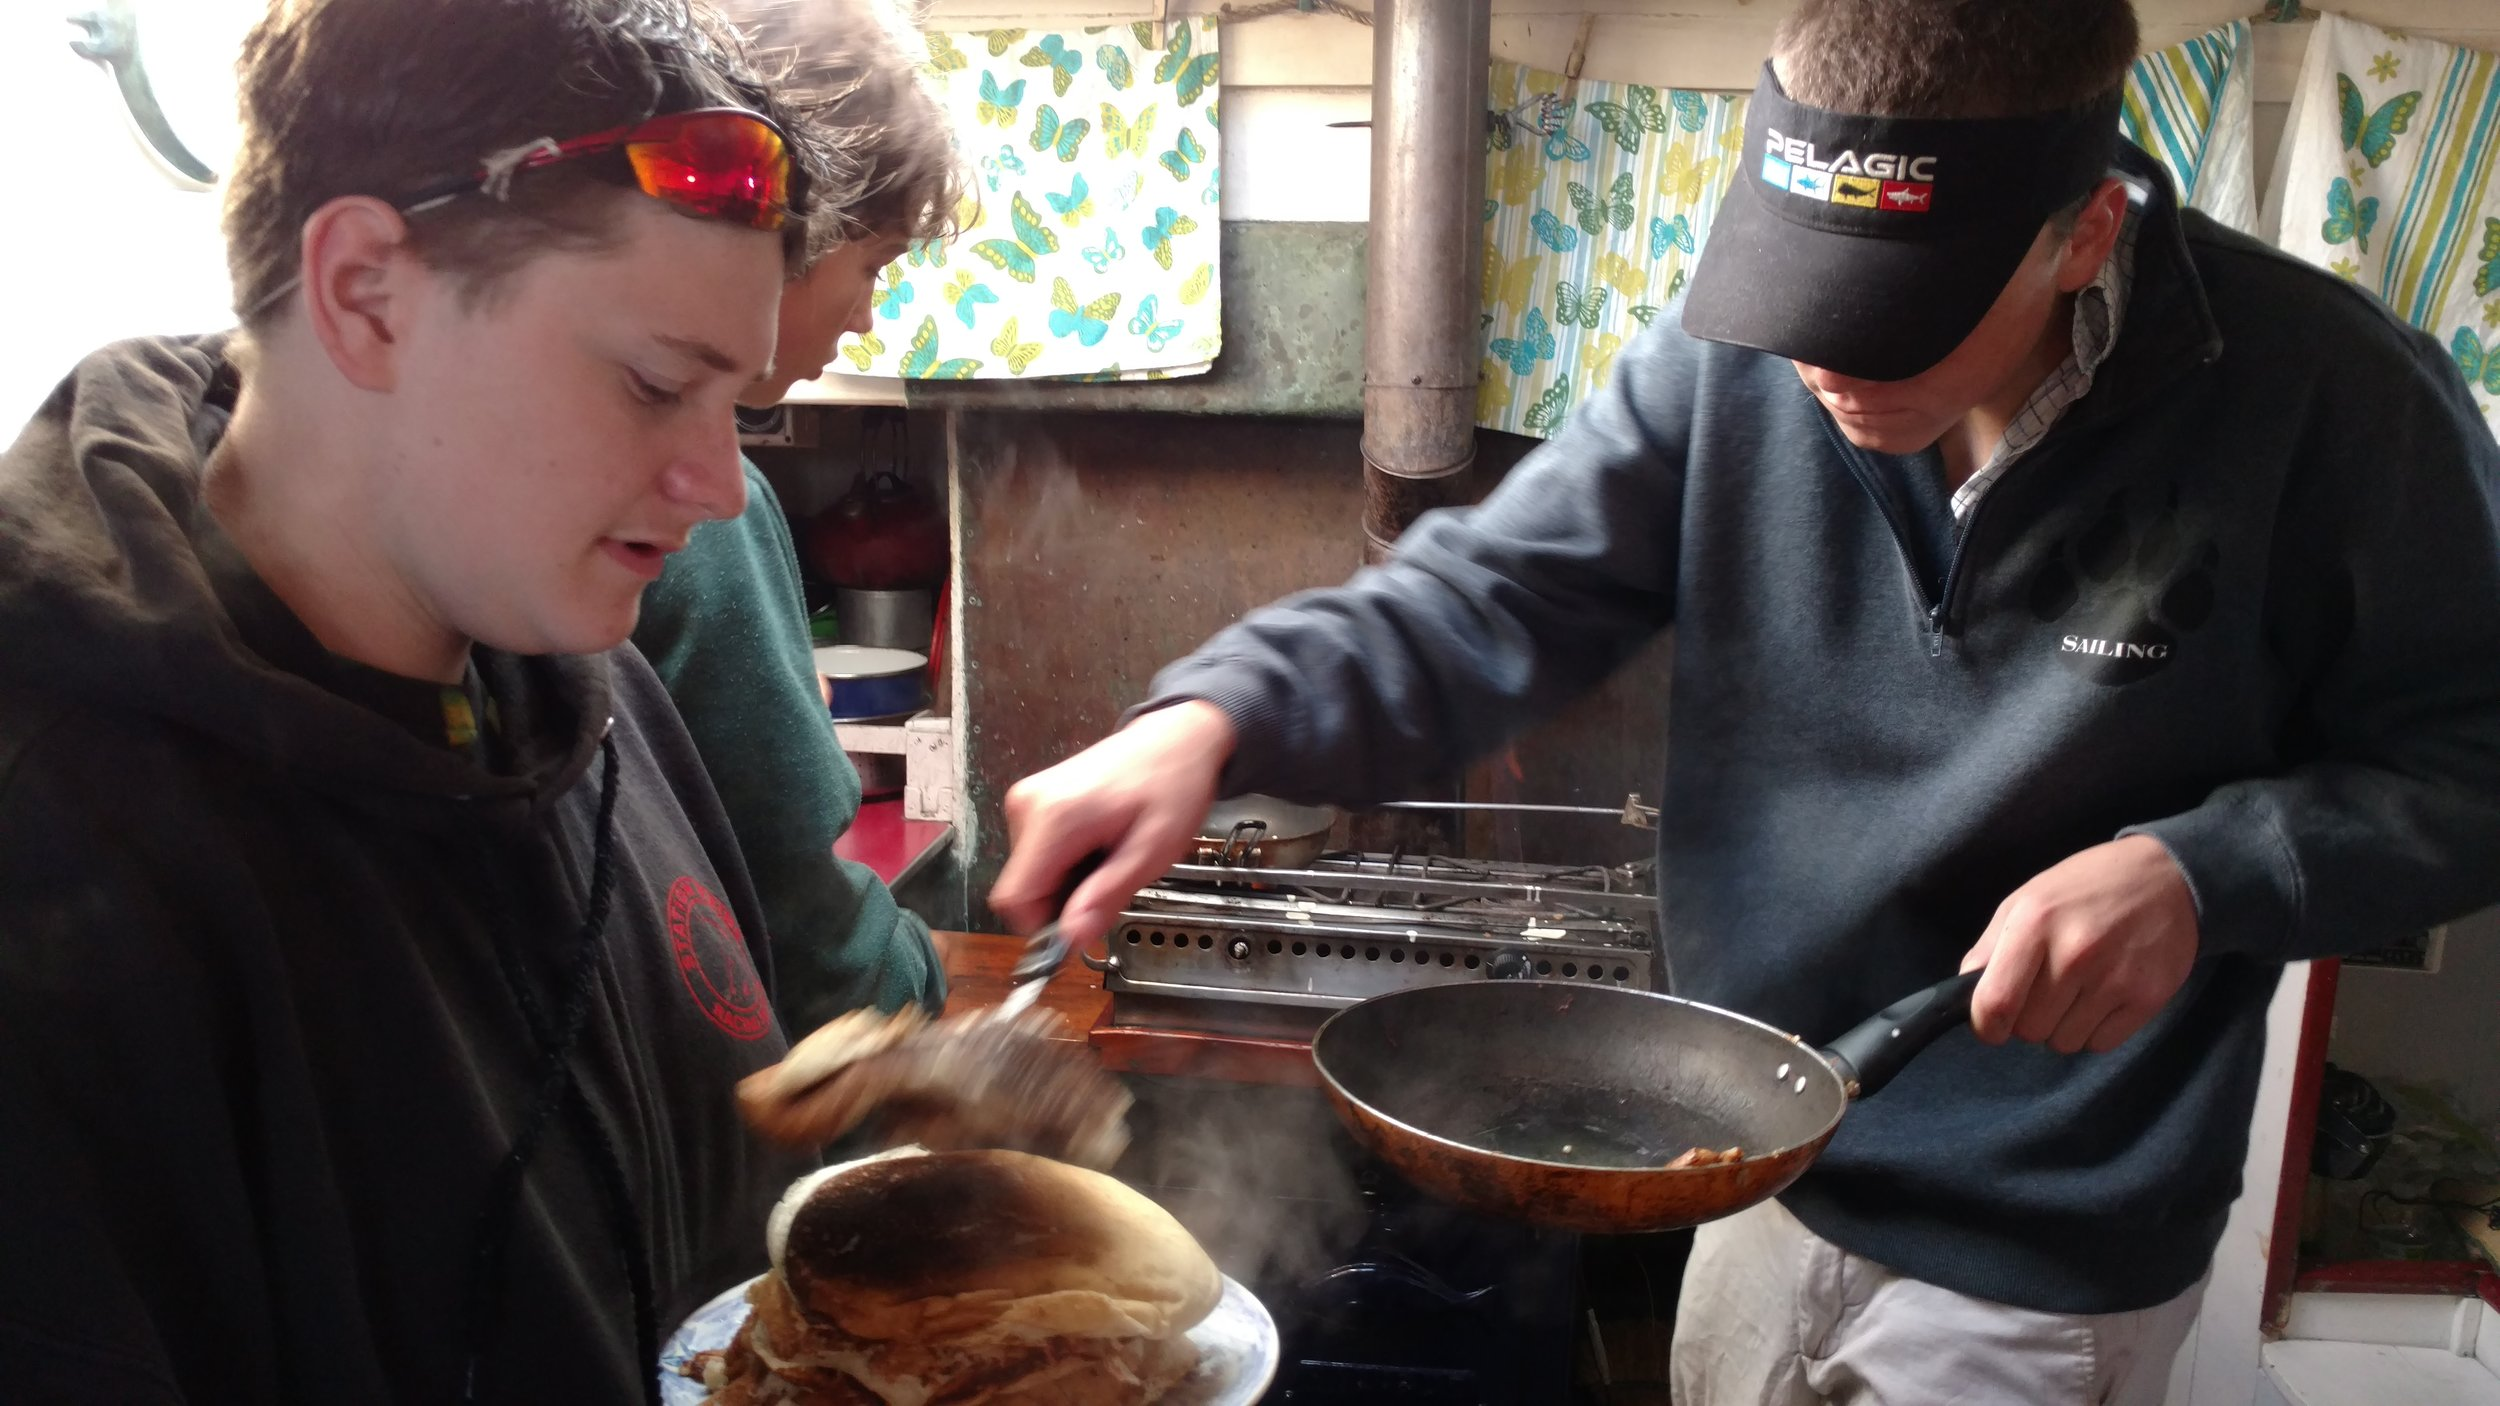 starboard watch makes breakfast for the entire crew aboard  Alamar